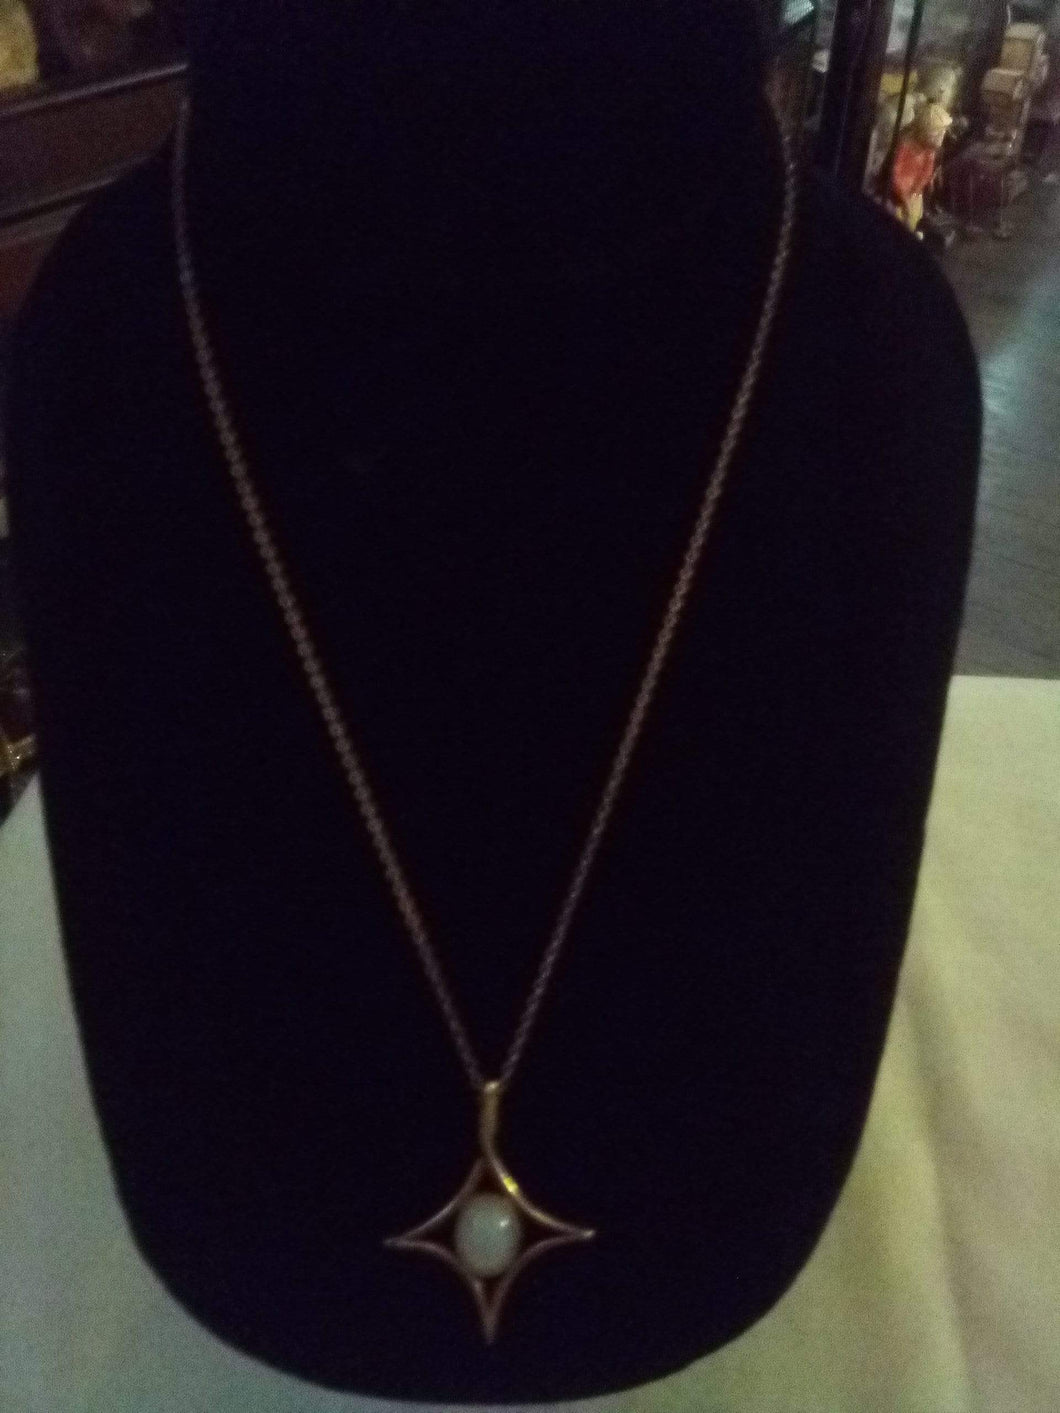 Cute necklace with pendent - B&P'sringsnthings